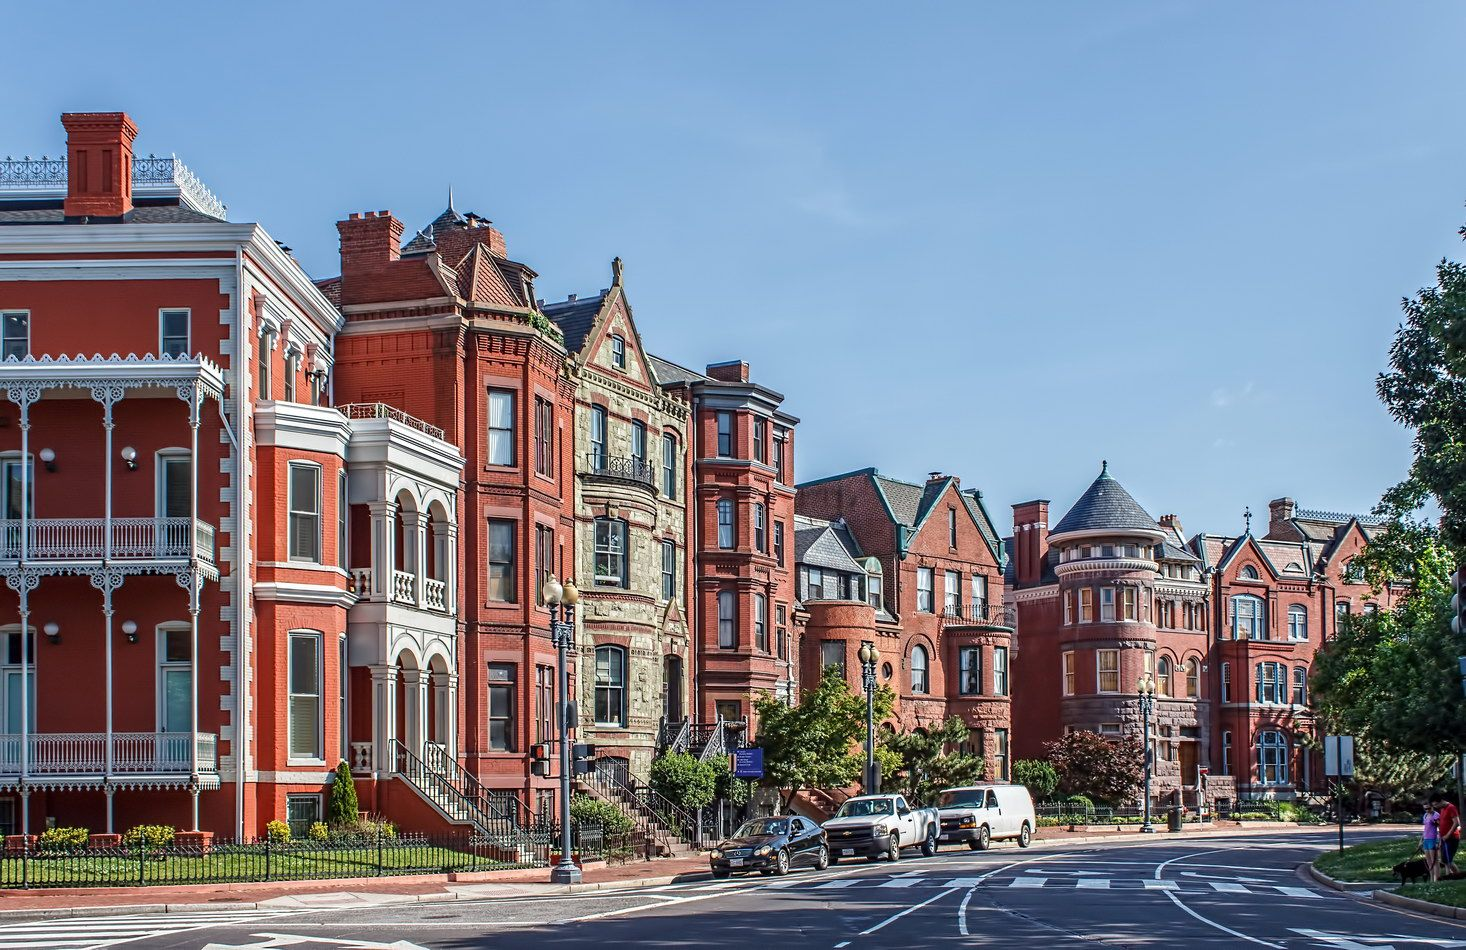 Homes on Logan Circle (With images) | New york ...